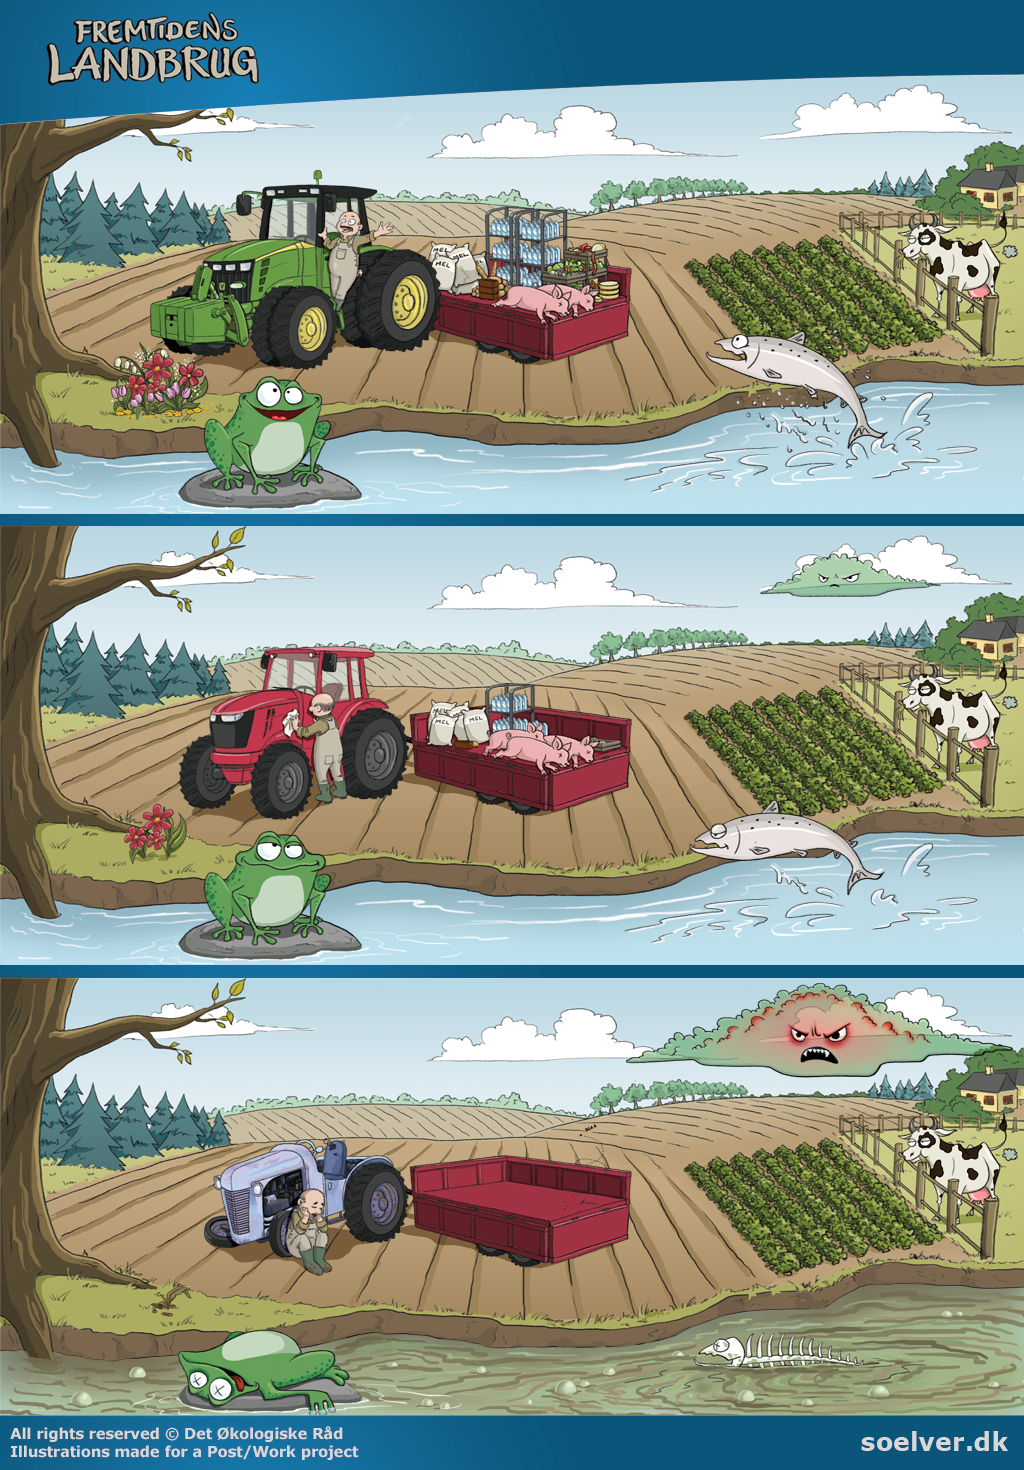 Game illustrations for The Future of Farming by Anita Soelver